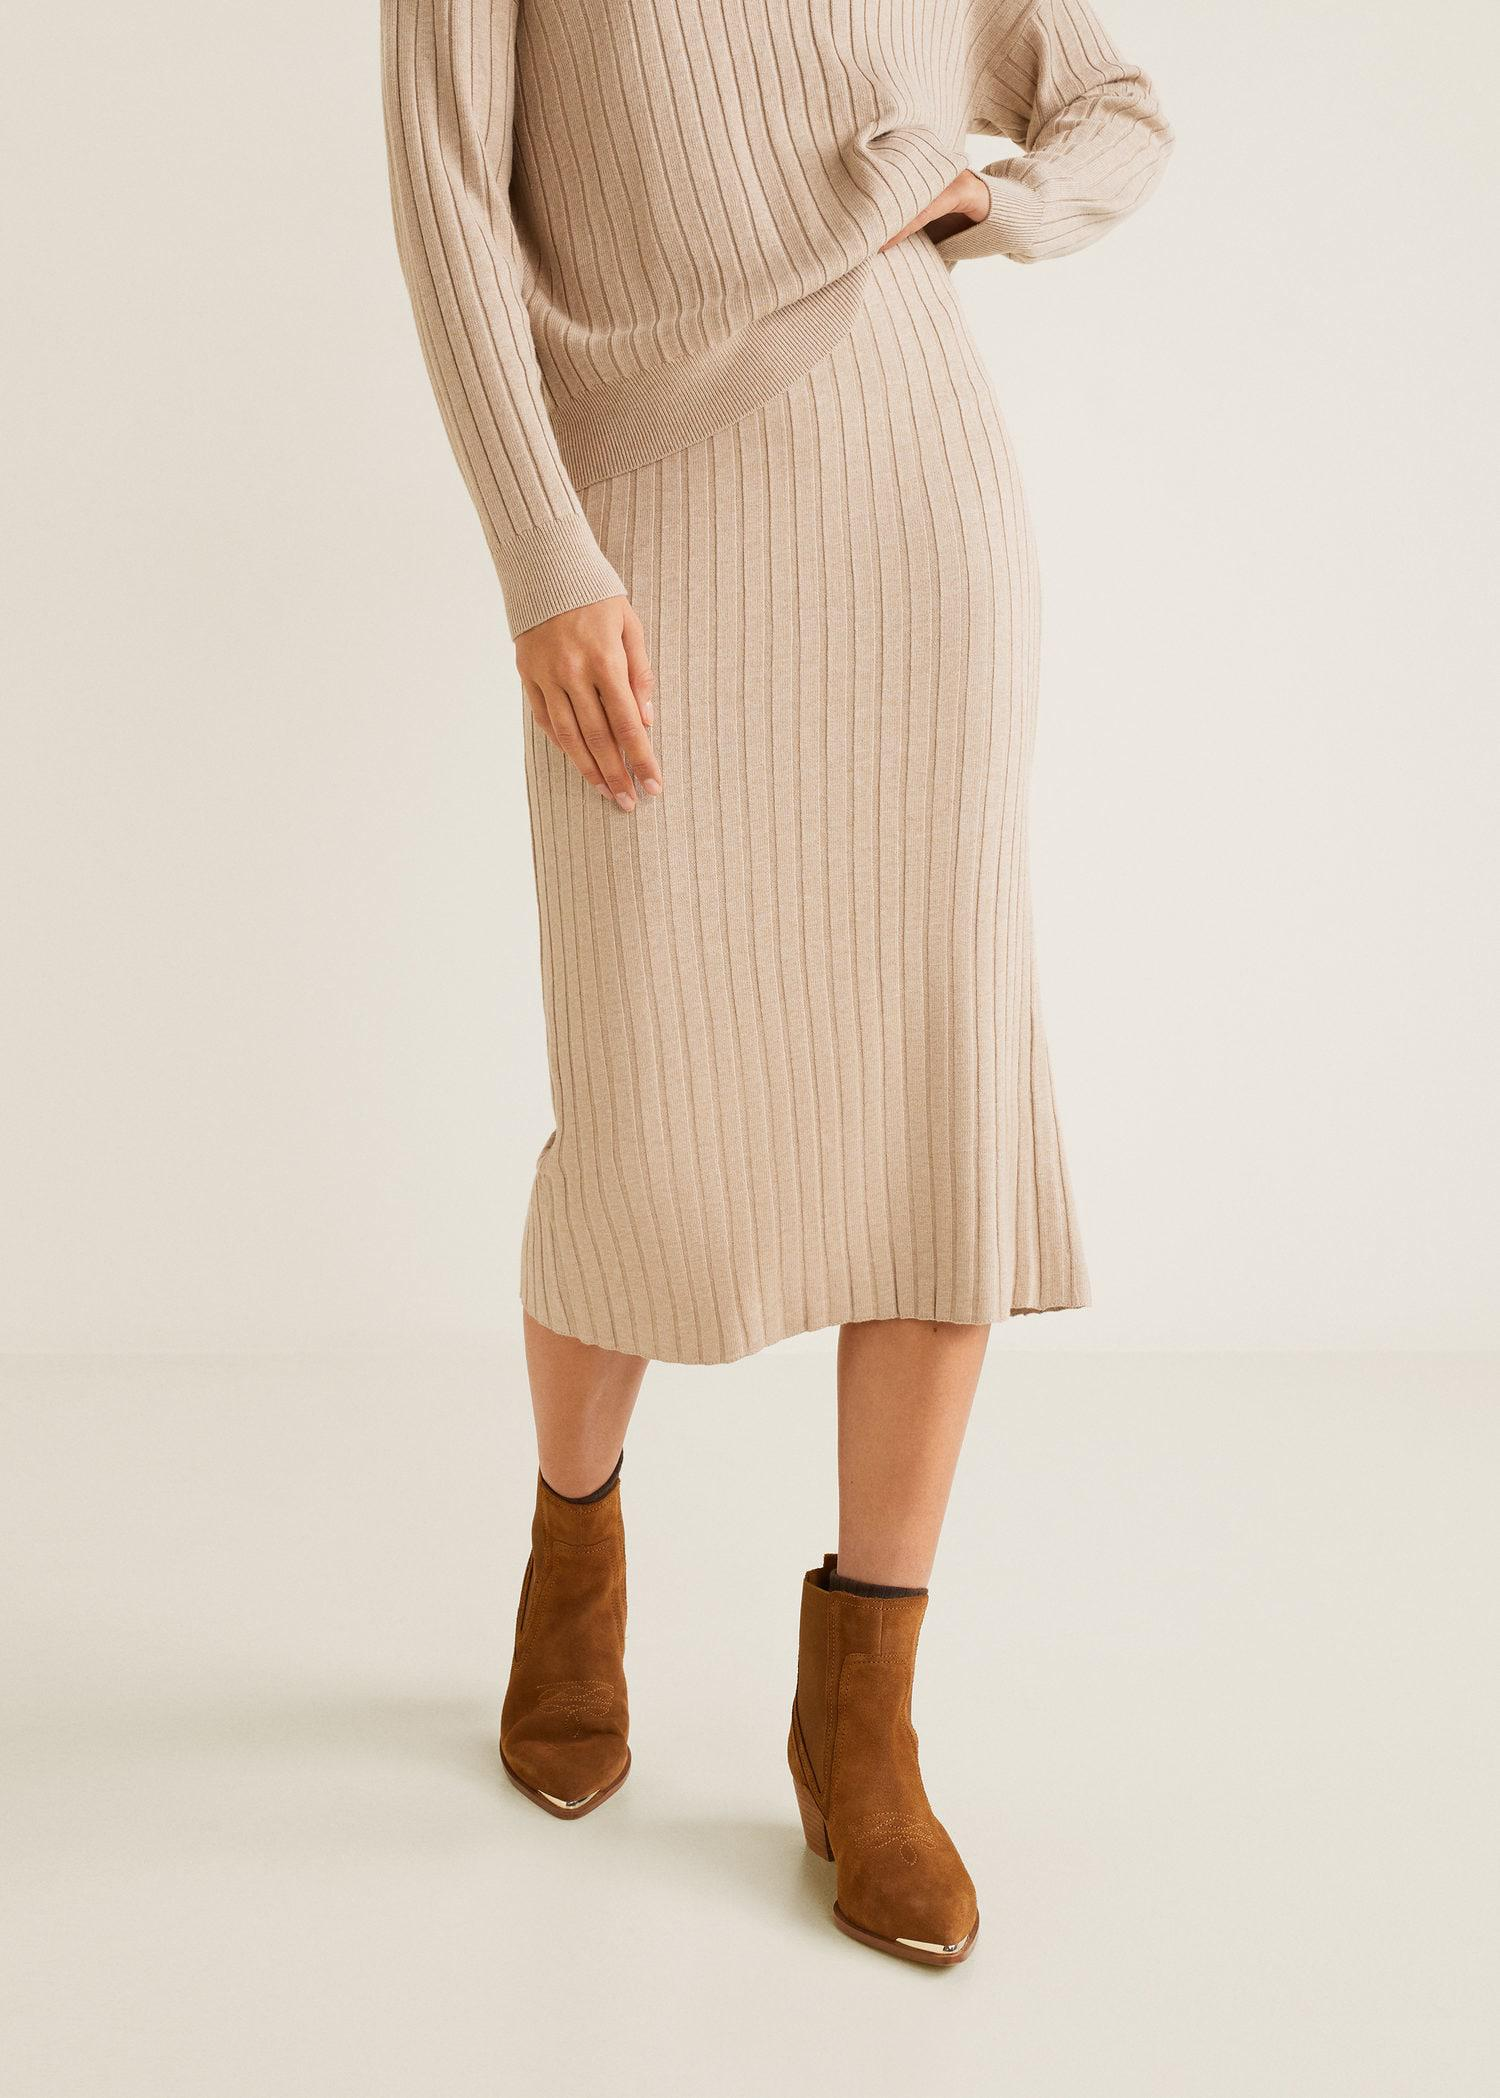 b663601dff Mango Cable Knit Skirt in Natural - Lyst